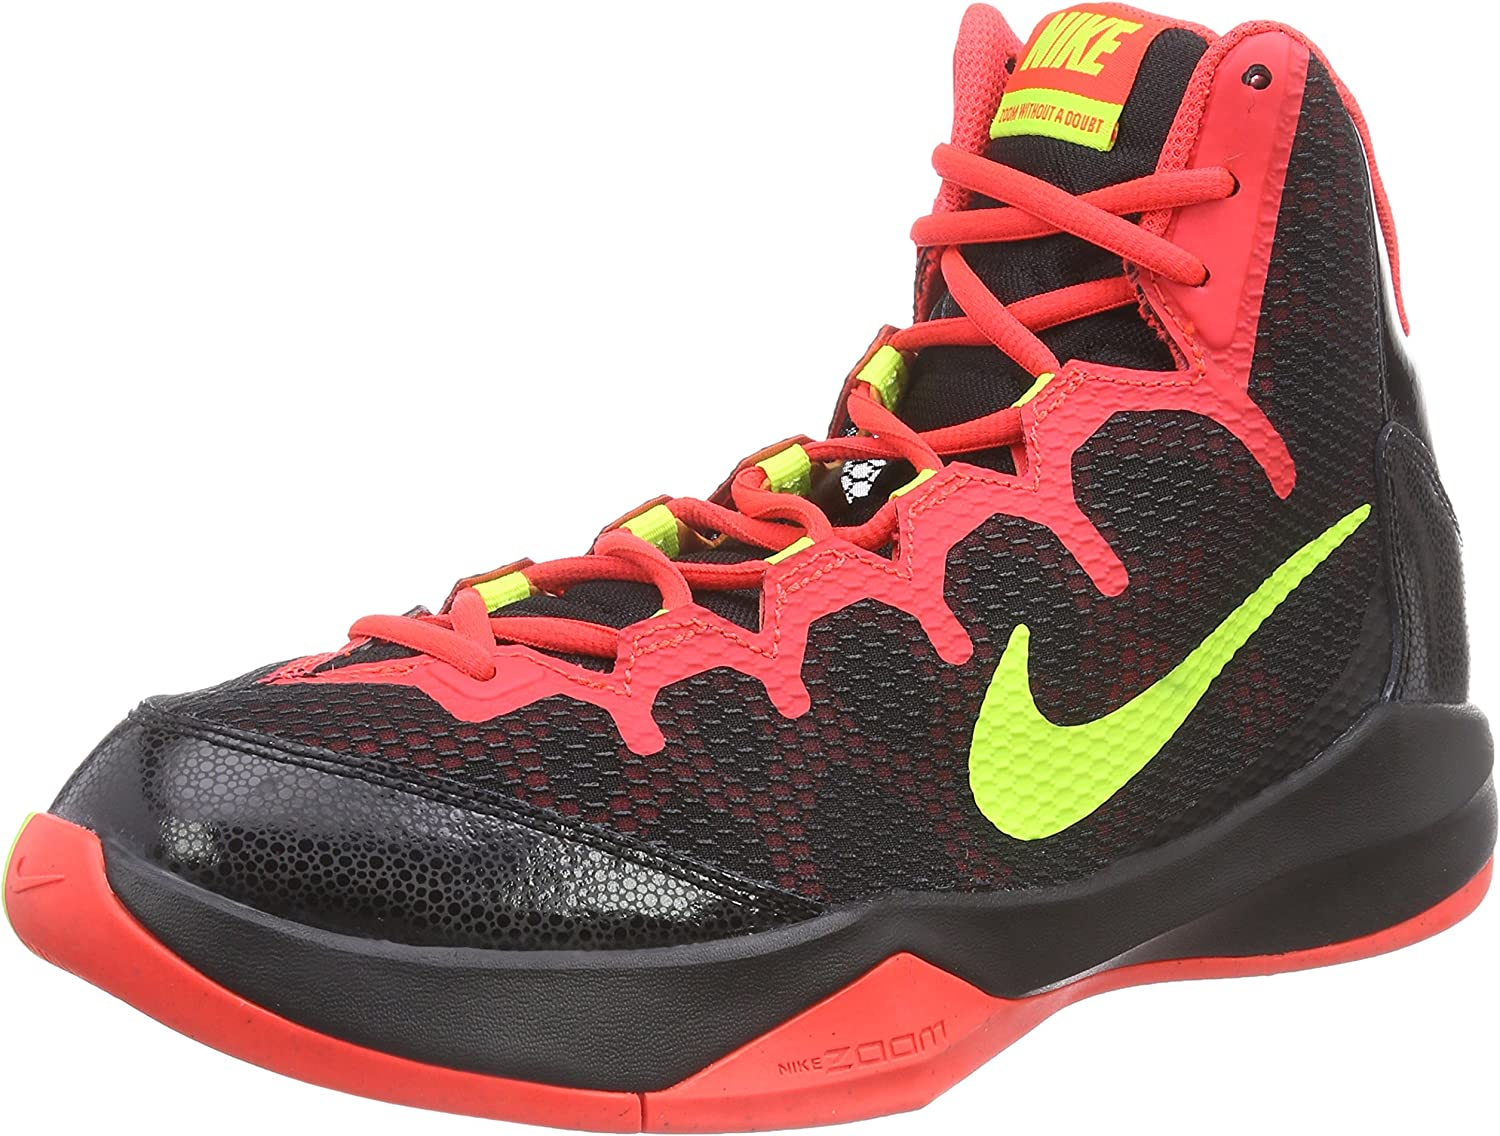 Nike Nike Zoom Without A Doubt Herren Basketballschuhe  bester Service